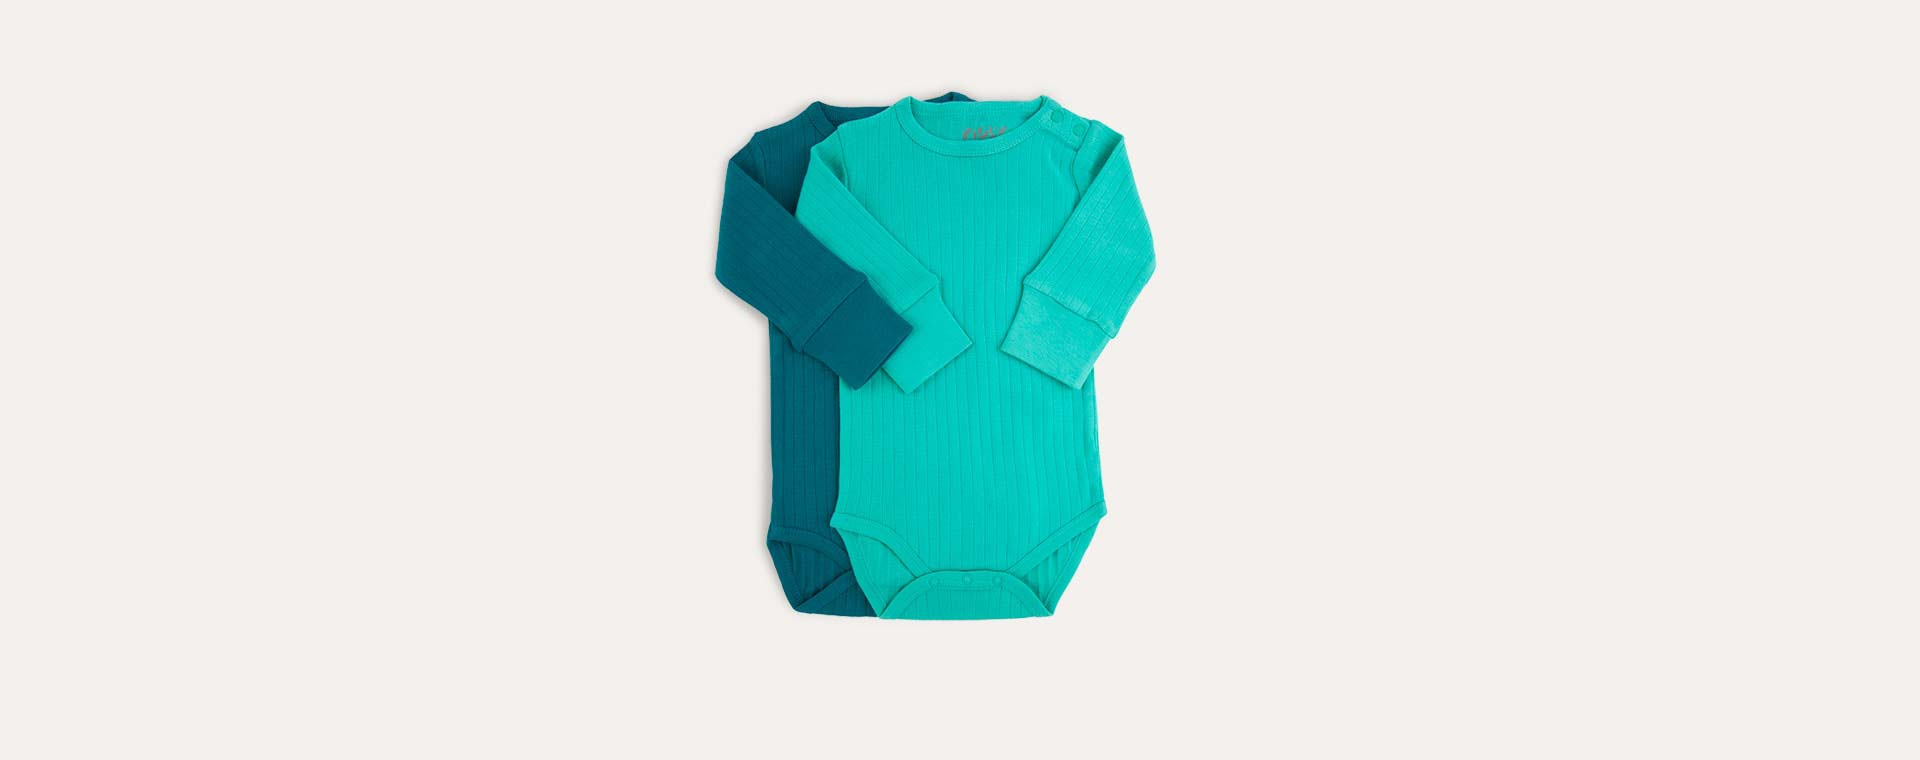 Green KIDLY Label Long Sleeve Bodysuit - 2 Pack